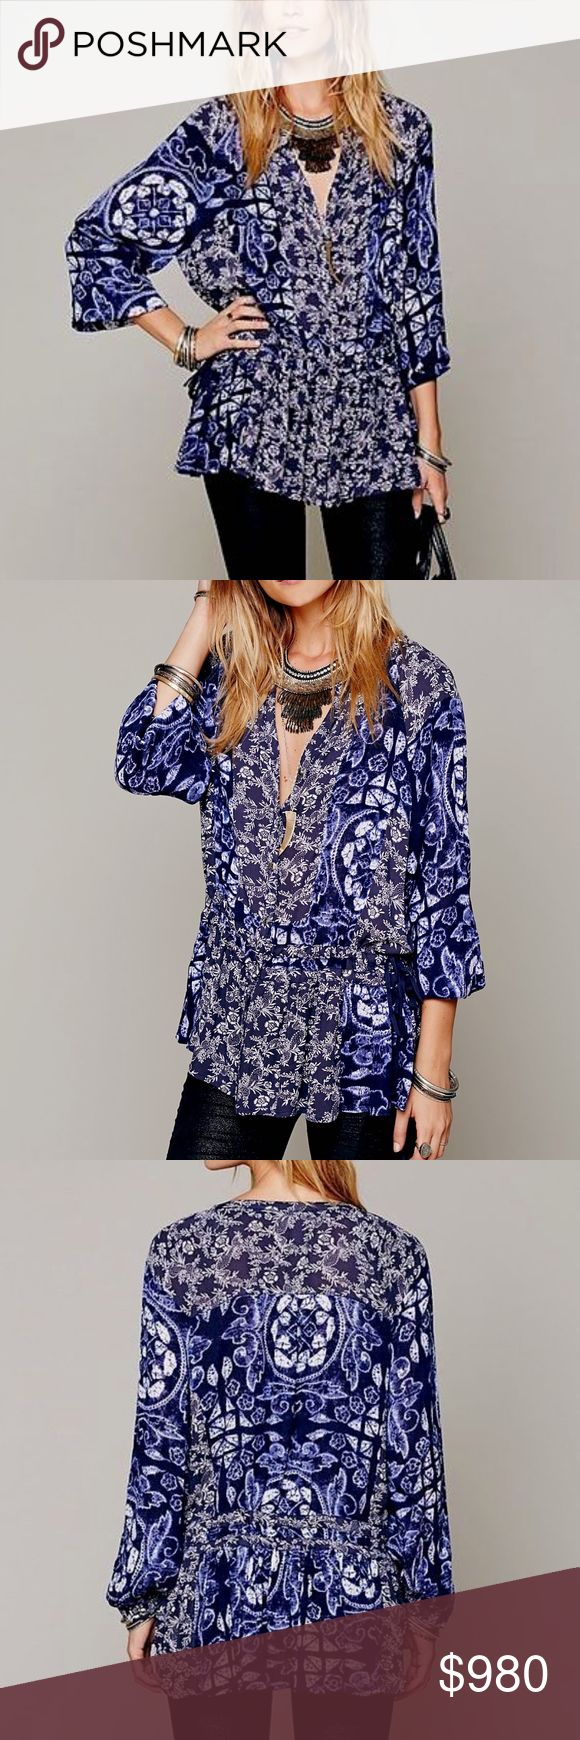 FREE PEOPLE Woven Tunic Intricate Draped Pullover Size XS. Excellent Condition.  • Beautiful boho blouse featuring soft gauzy fabric & dropped shoulders. • Button-down front with v-neckline & ruffled high-low hem. • Floral multicolor patchwork printed design throughout. • Double adjustable drawstring tie closures at sides. • Plum, muted purple, navy & white. • Effortless, unlined & loose-fitting. • Long sleeves & buttoned cuffs. • XS = 0-2.  # Spring  • Same-Business-Day Shipping (10am CT)…